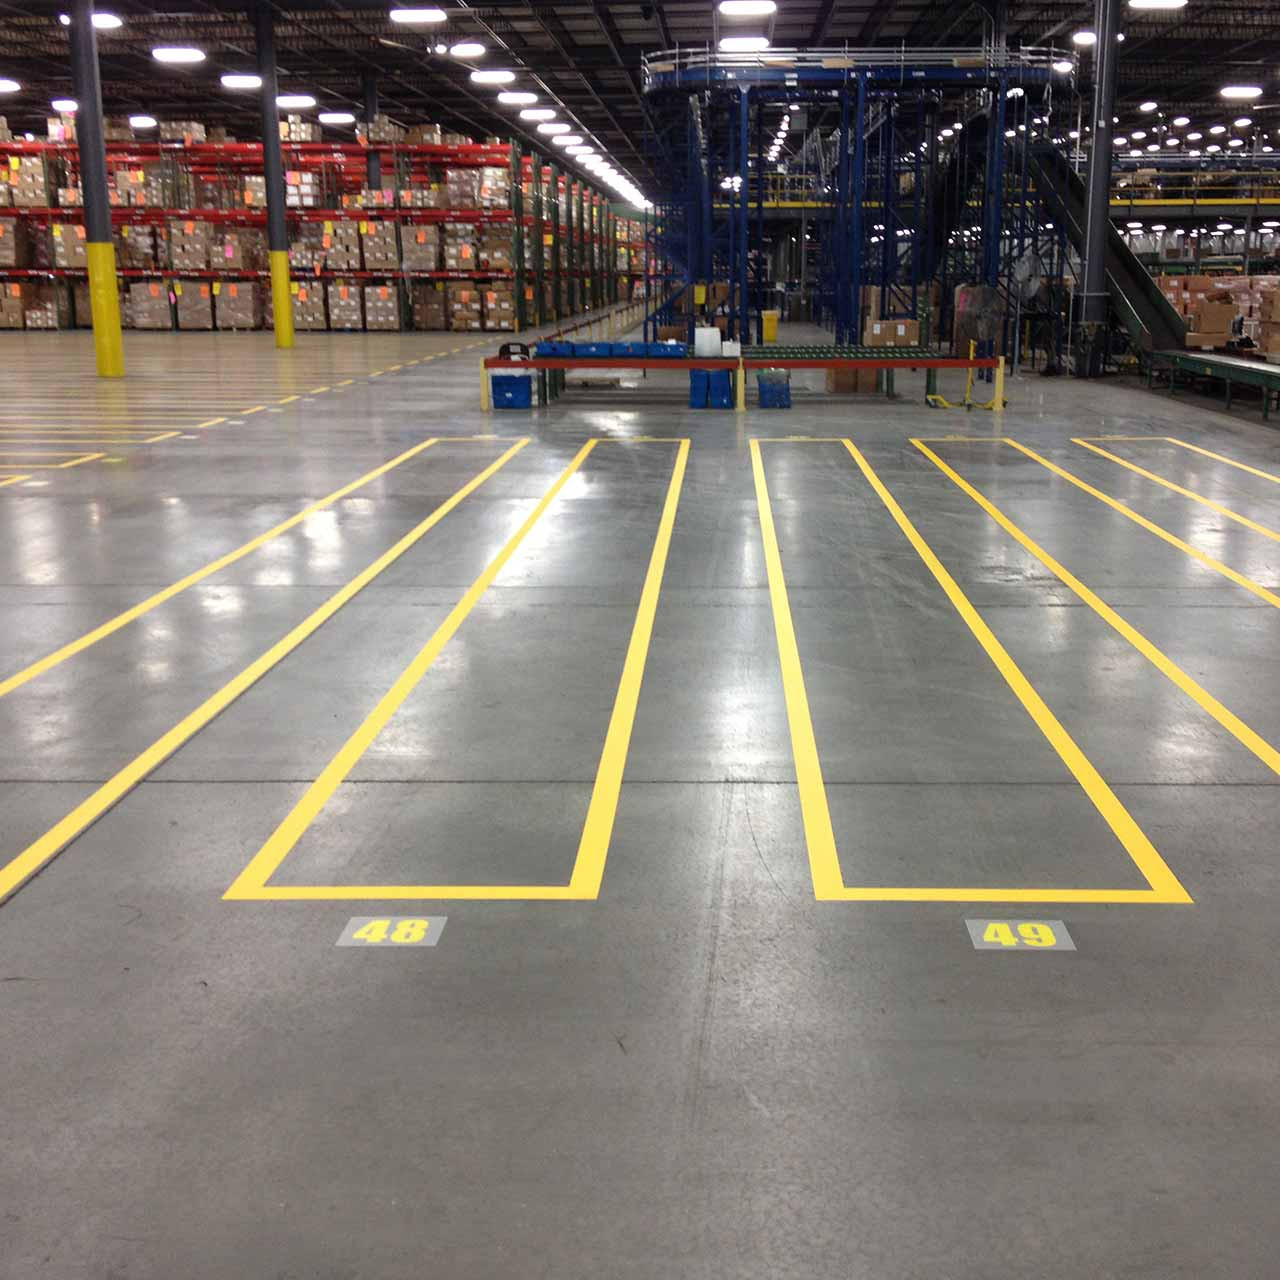 Zones created by striping